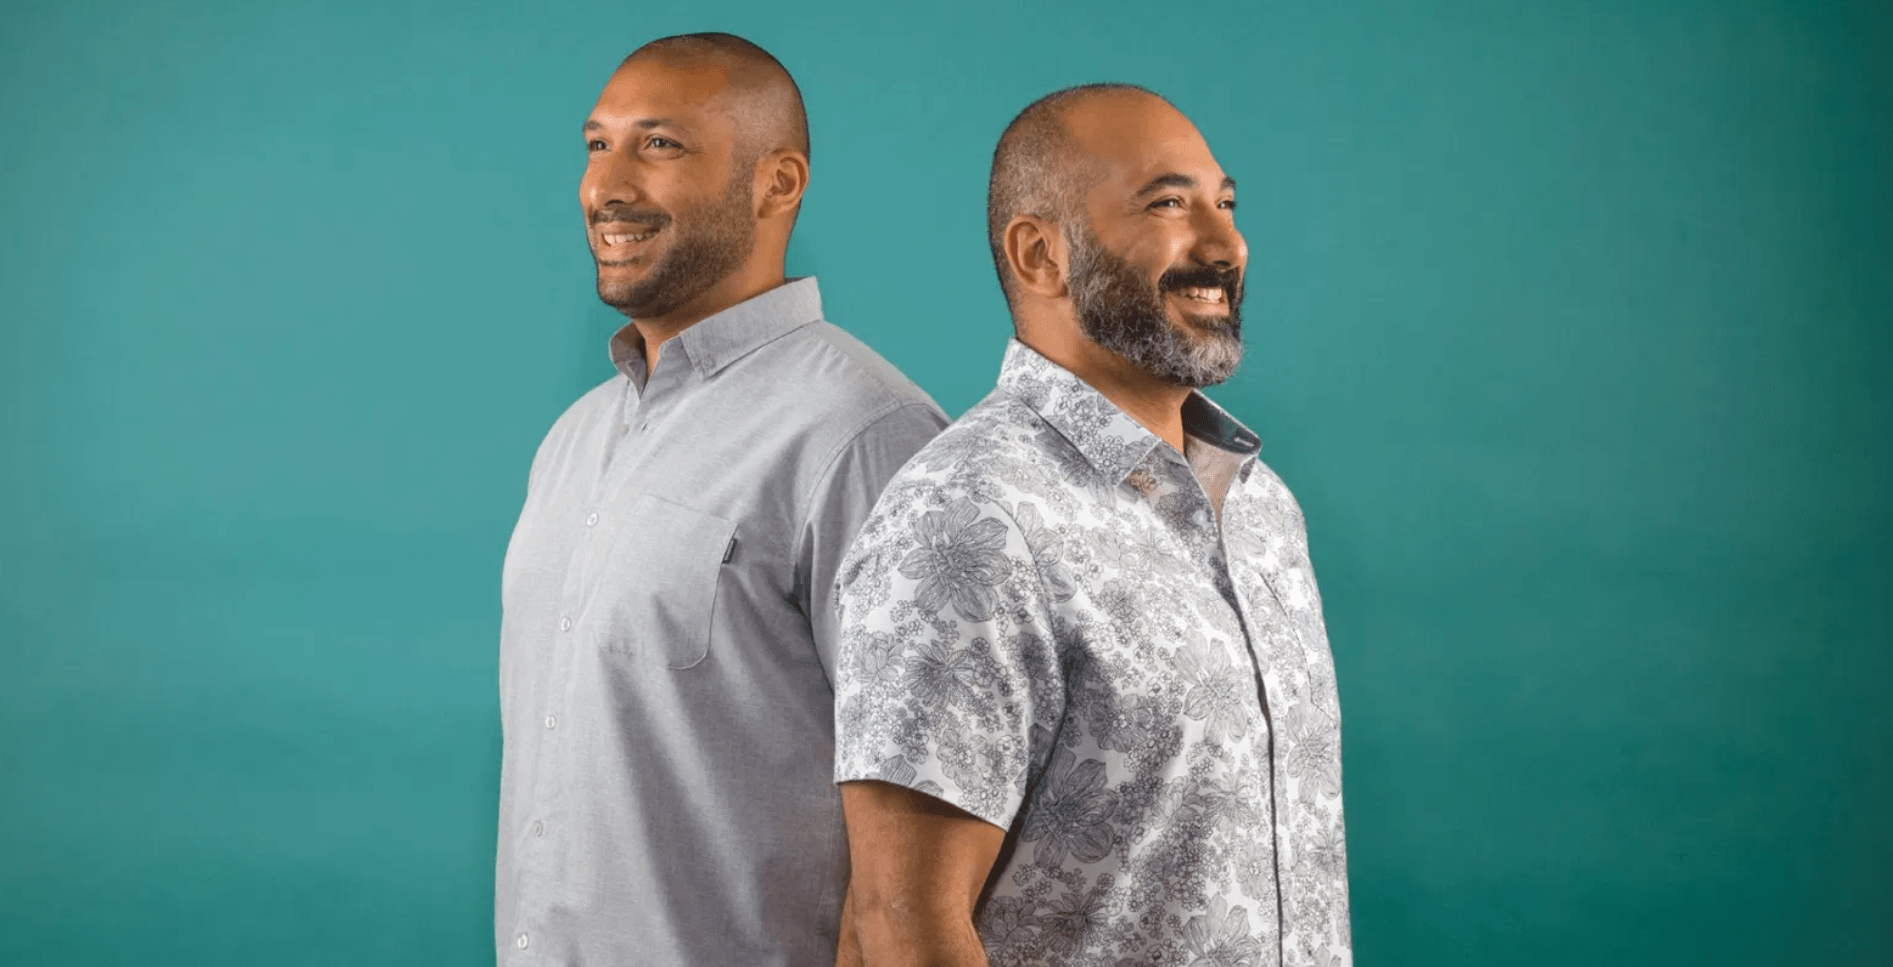 Tarik Sultan and Omar Sultan_Sultan Ventures_Hawaii Business Magazine_5 Ways to Boost Local Innovation